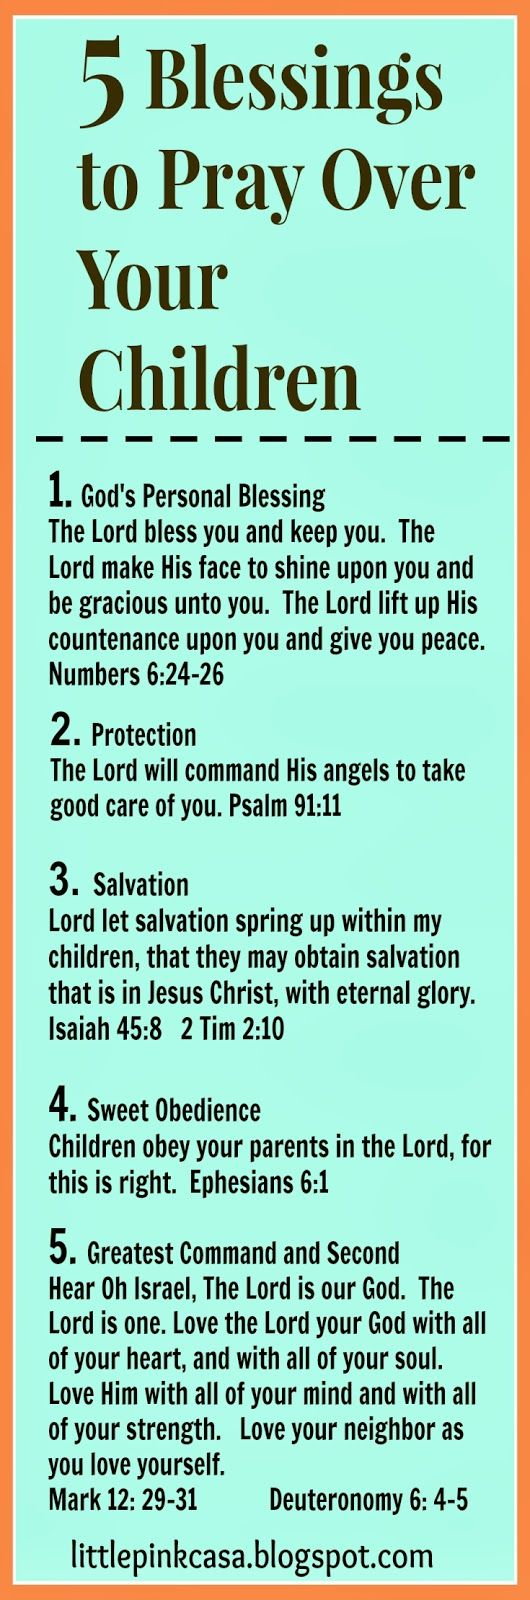 Little Pink Casa: 5 Powerful Blessings to Pray Over Your Children